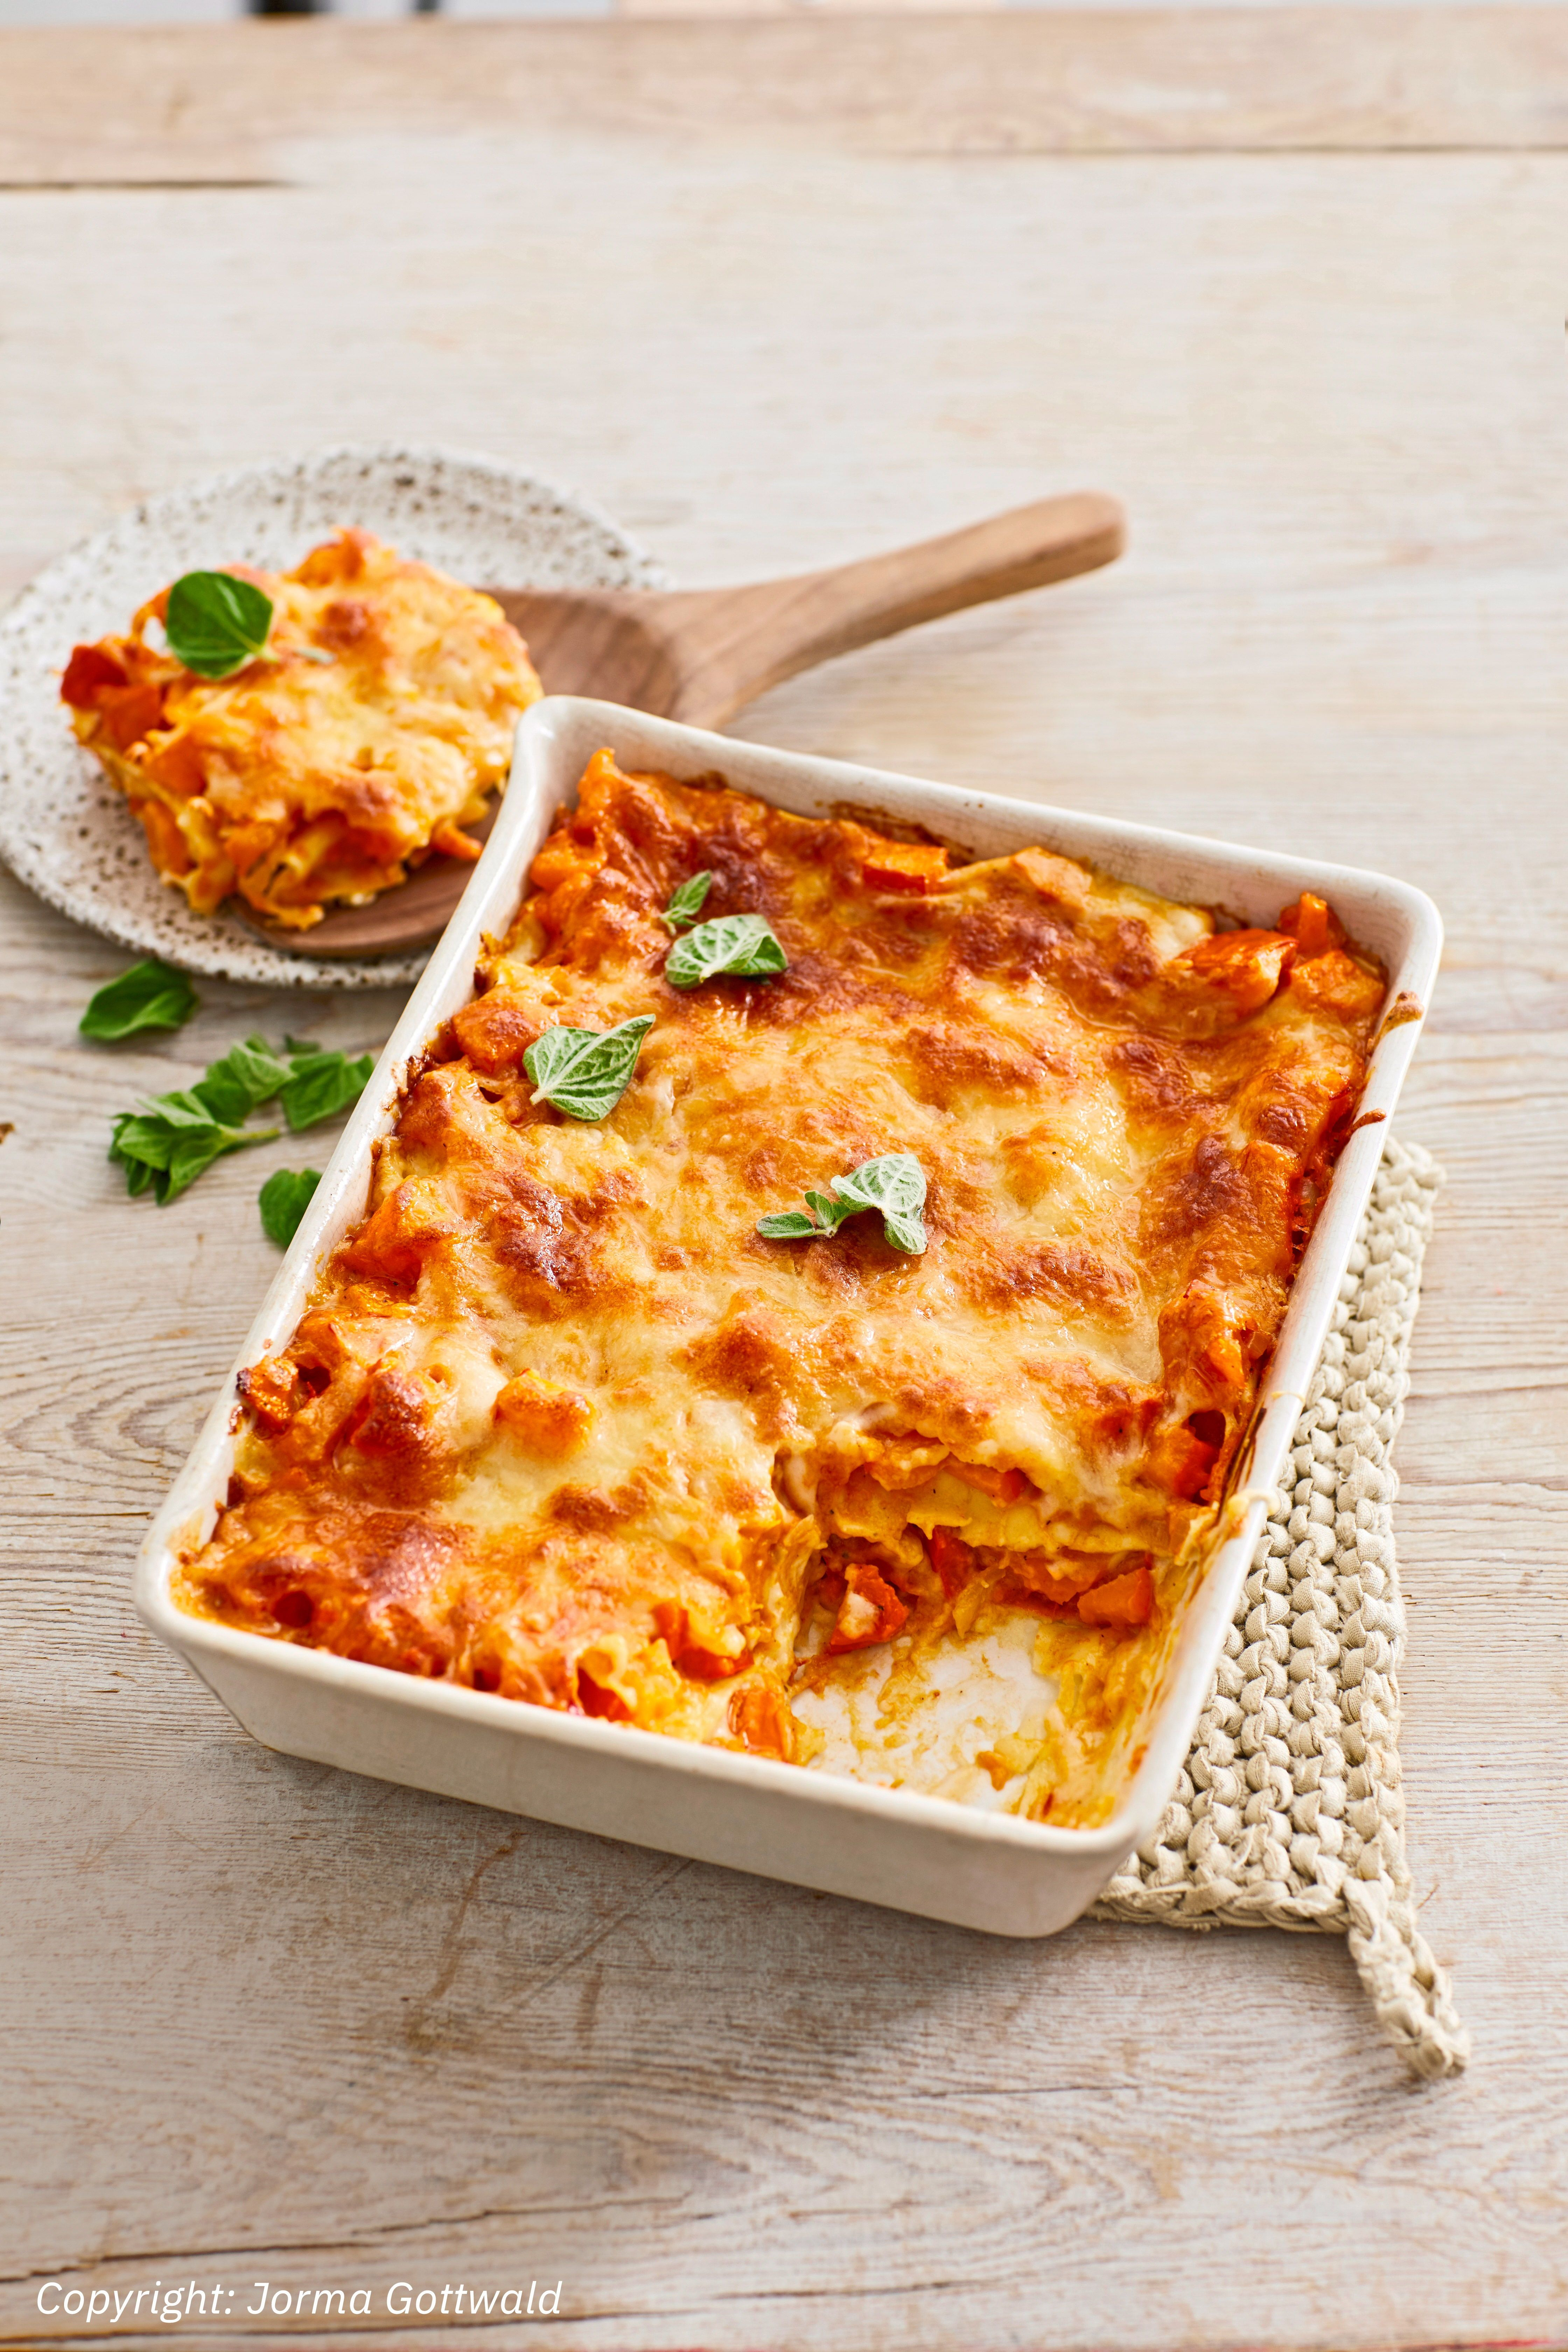 Photo of Kürbis-Lasagne mit Tomaten von Evas_Backparty | Chefkoch